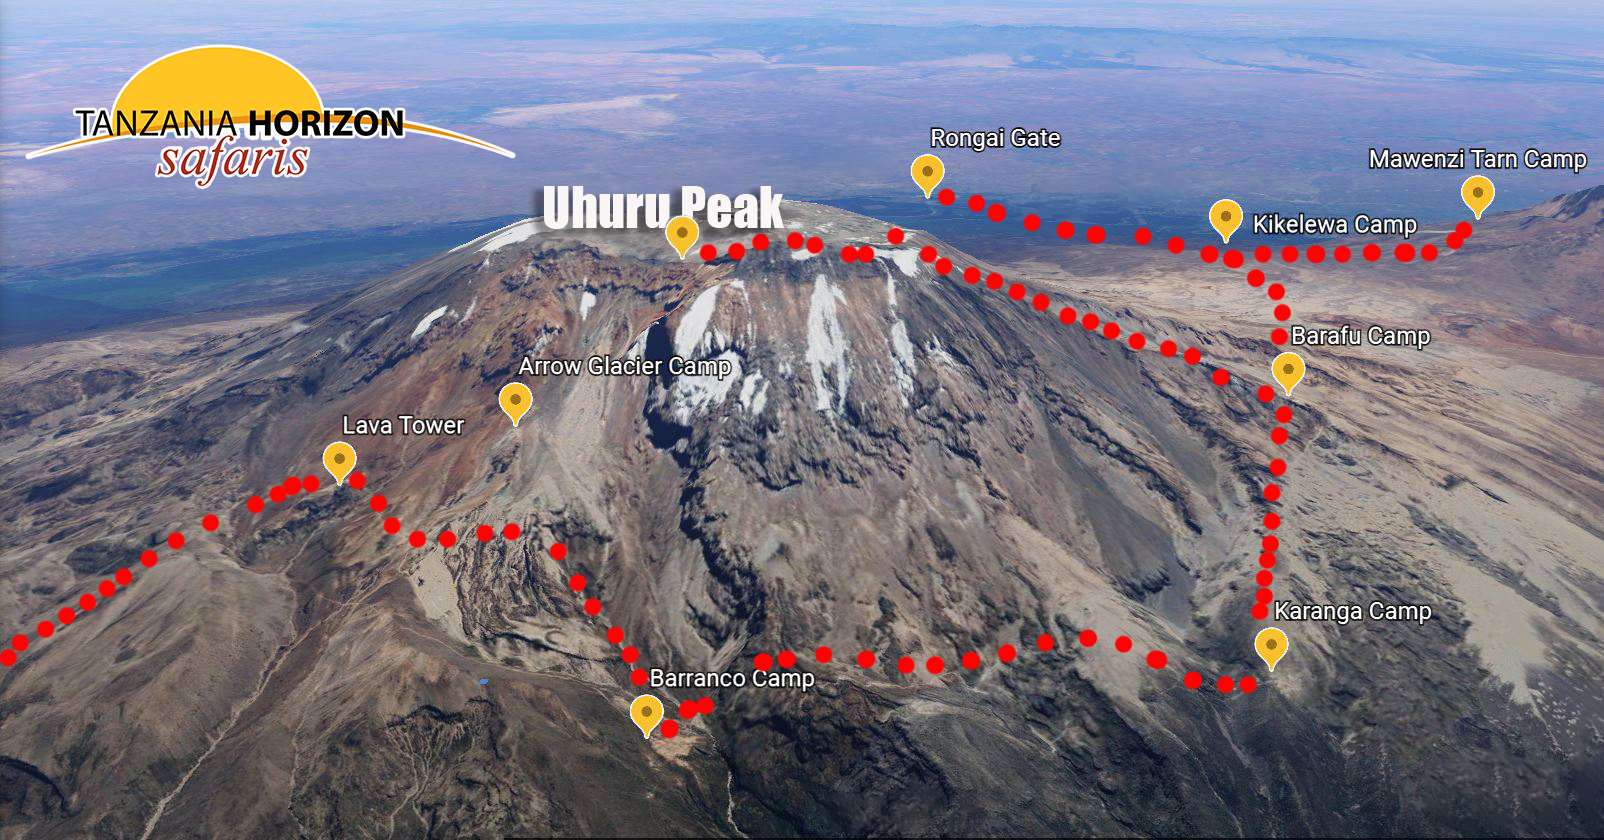 Uhuru Peak and DIFFERENT ROUTES TO APPROACH KILIMANJARO / by GOOGLE